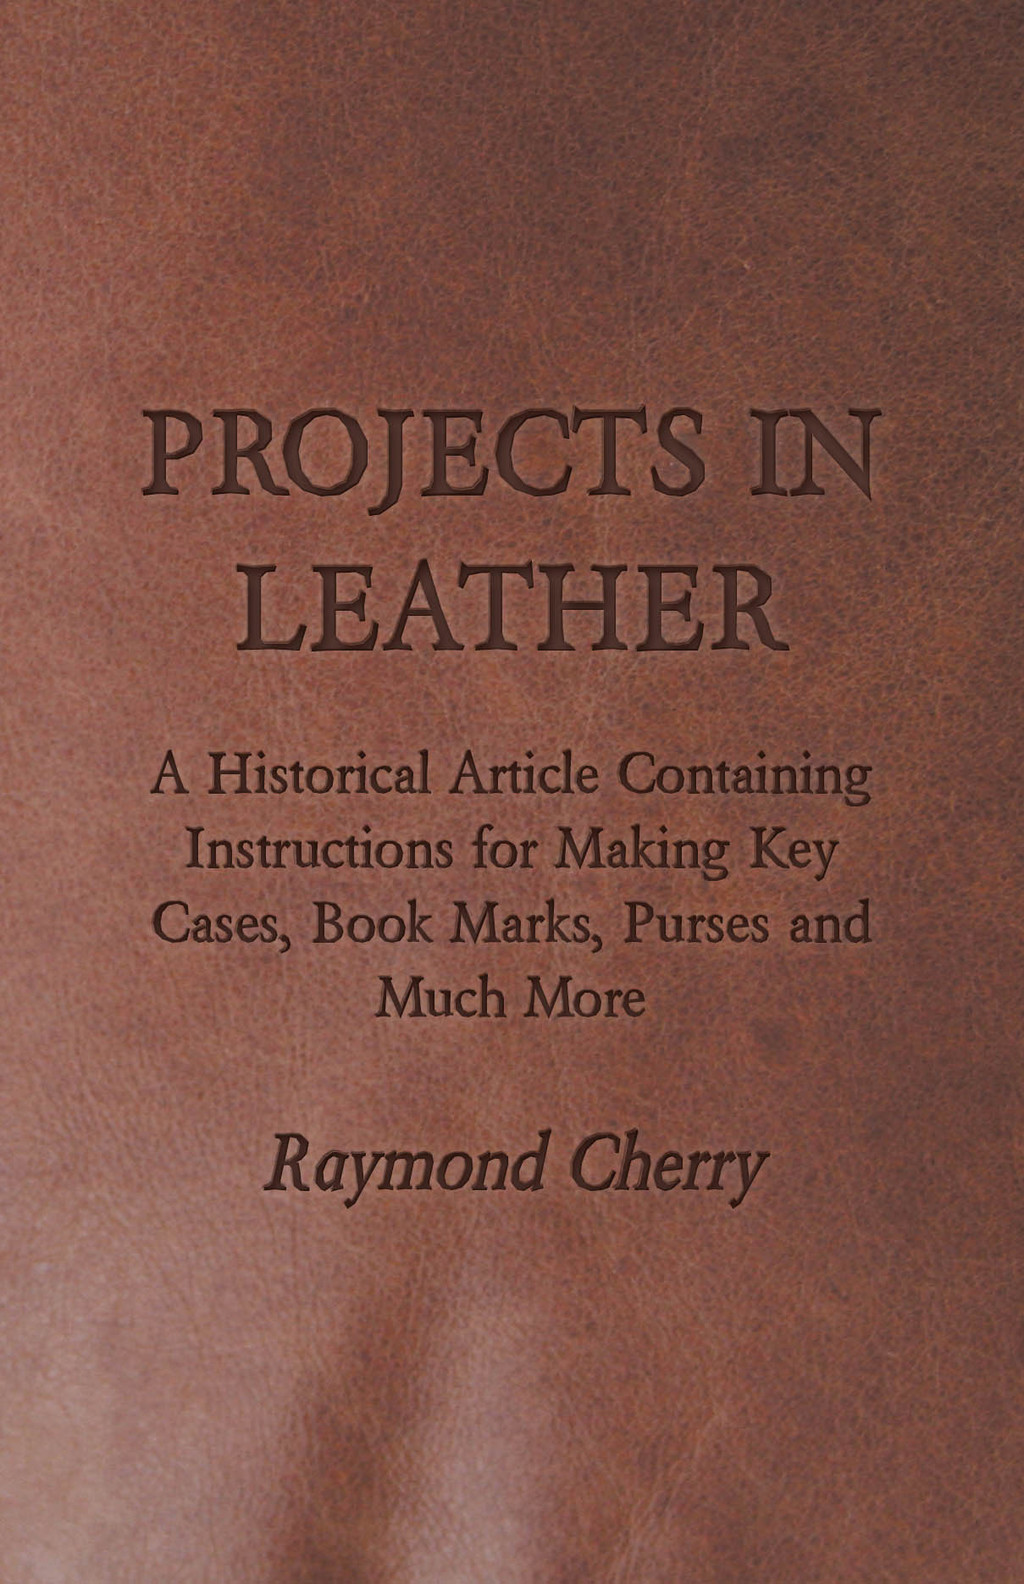 Projects in Leather - A Historical Article Containing Instructions for Making Key Cases  Book Marks  Purses and Much More (eBook) (9781473356894) photo